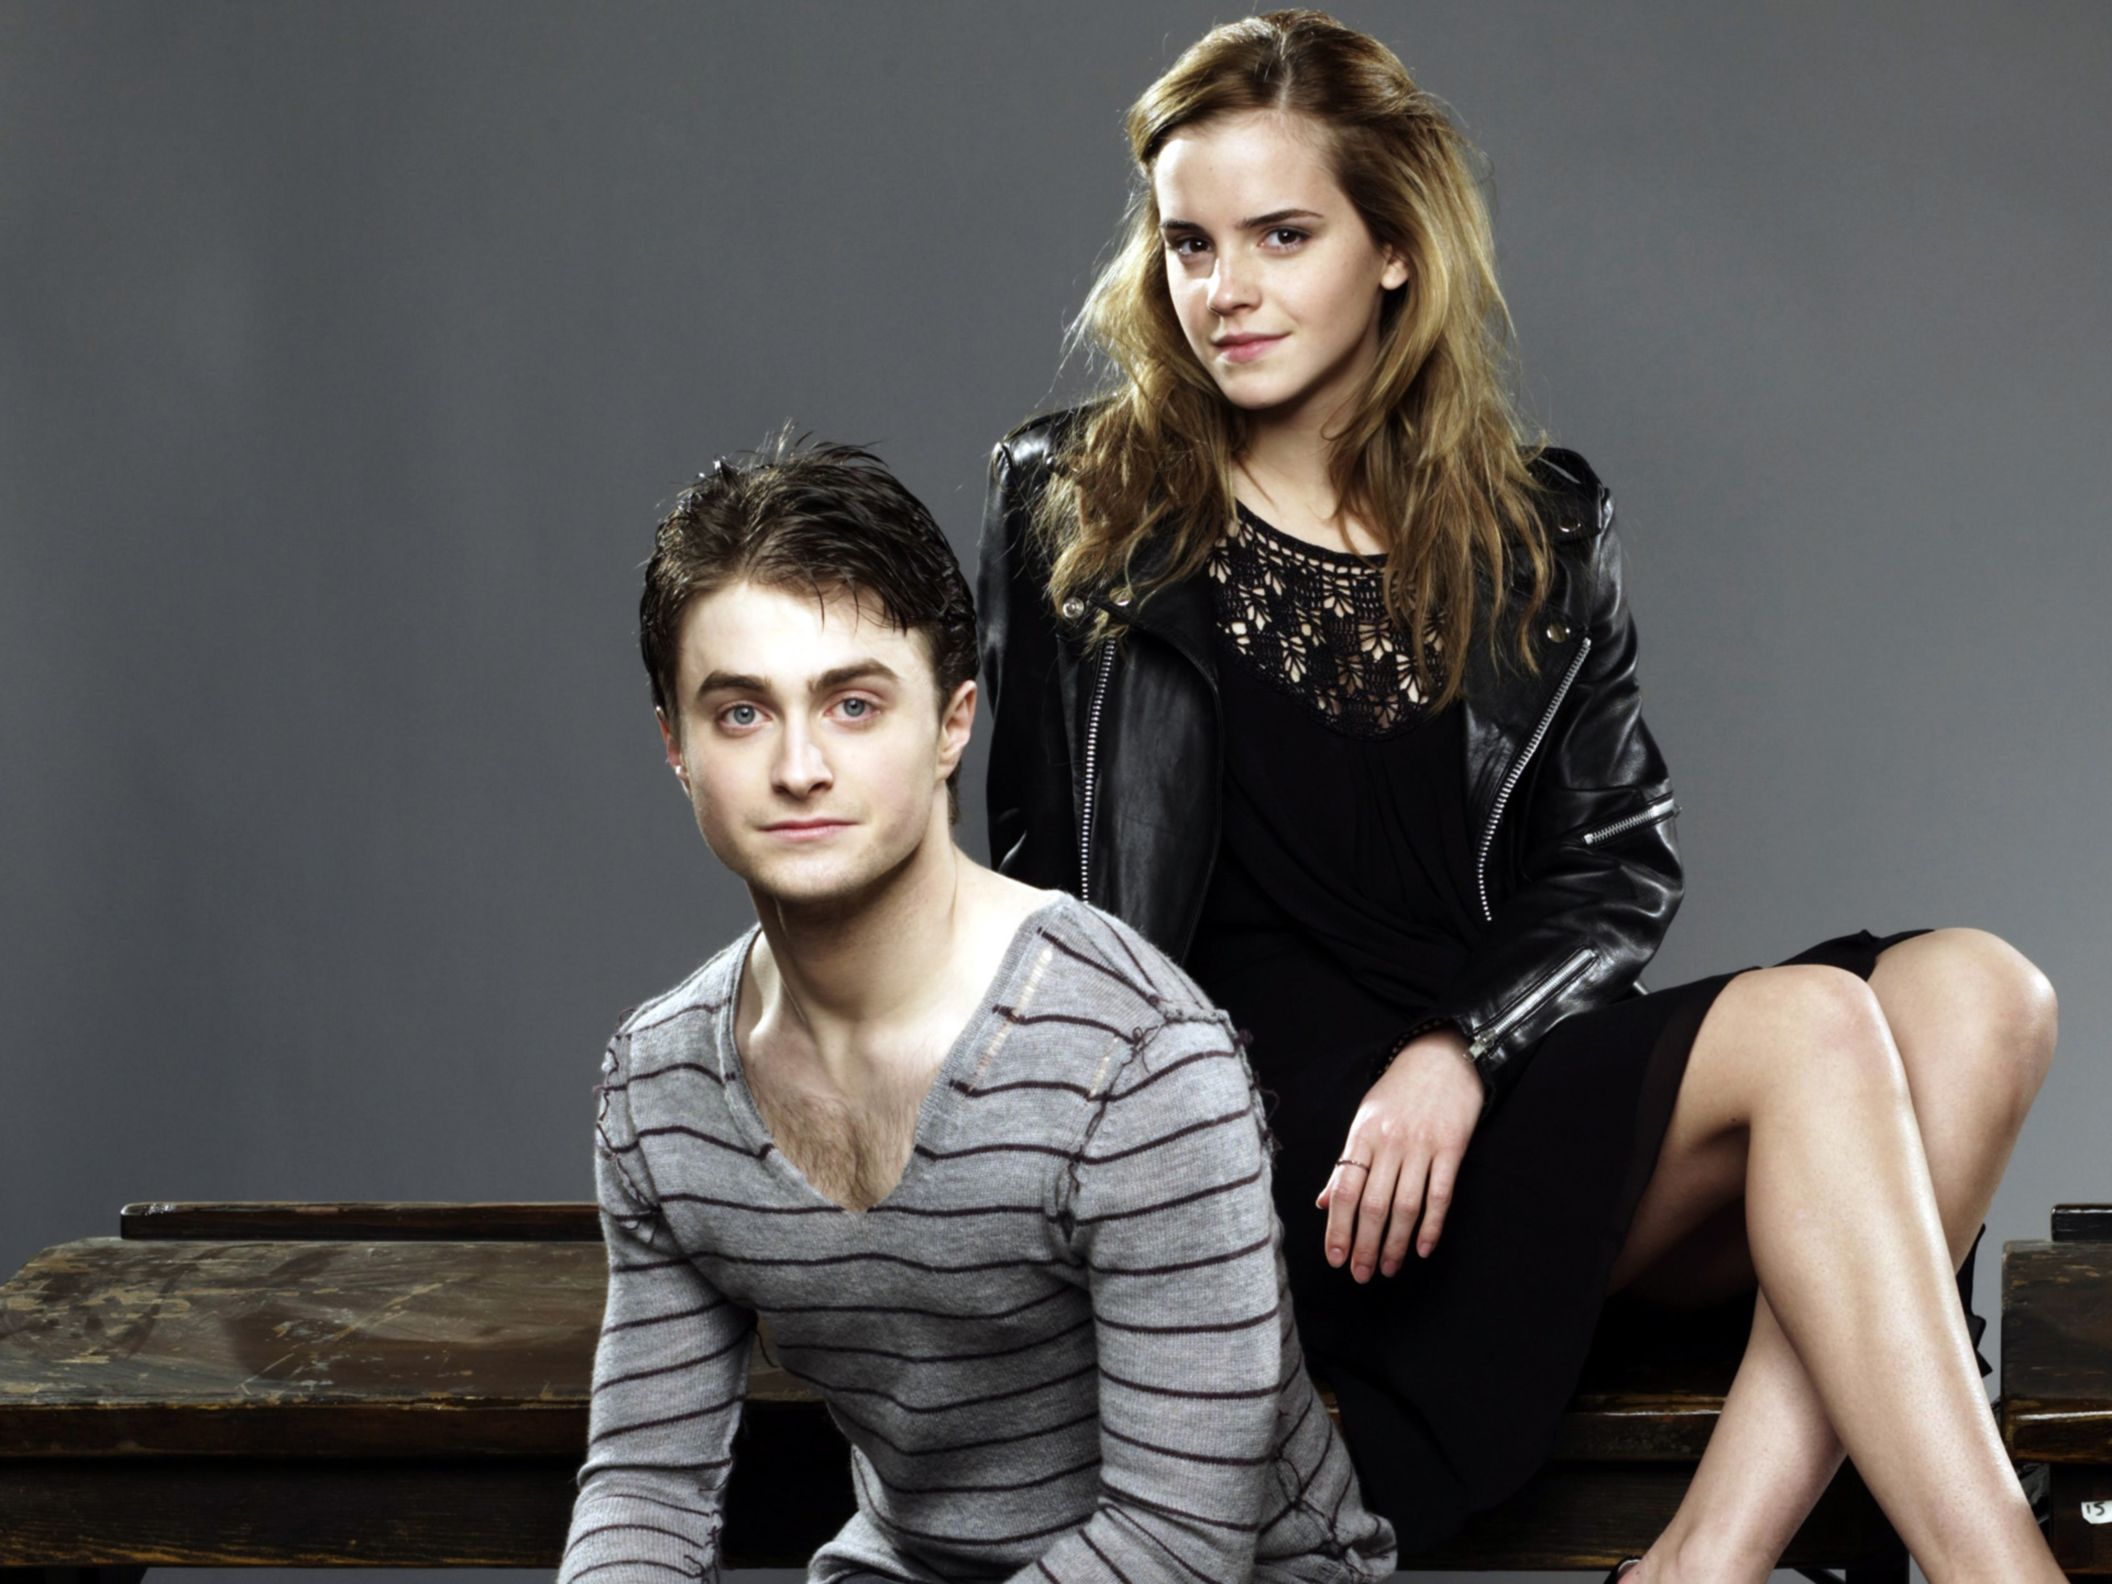 Download free HD Emma Harry Normal Wallpaper, image